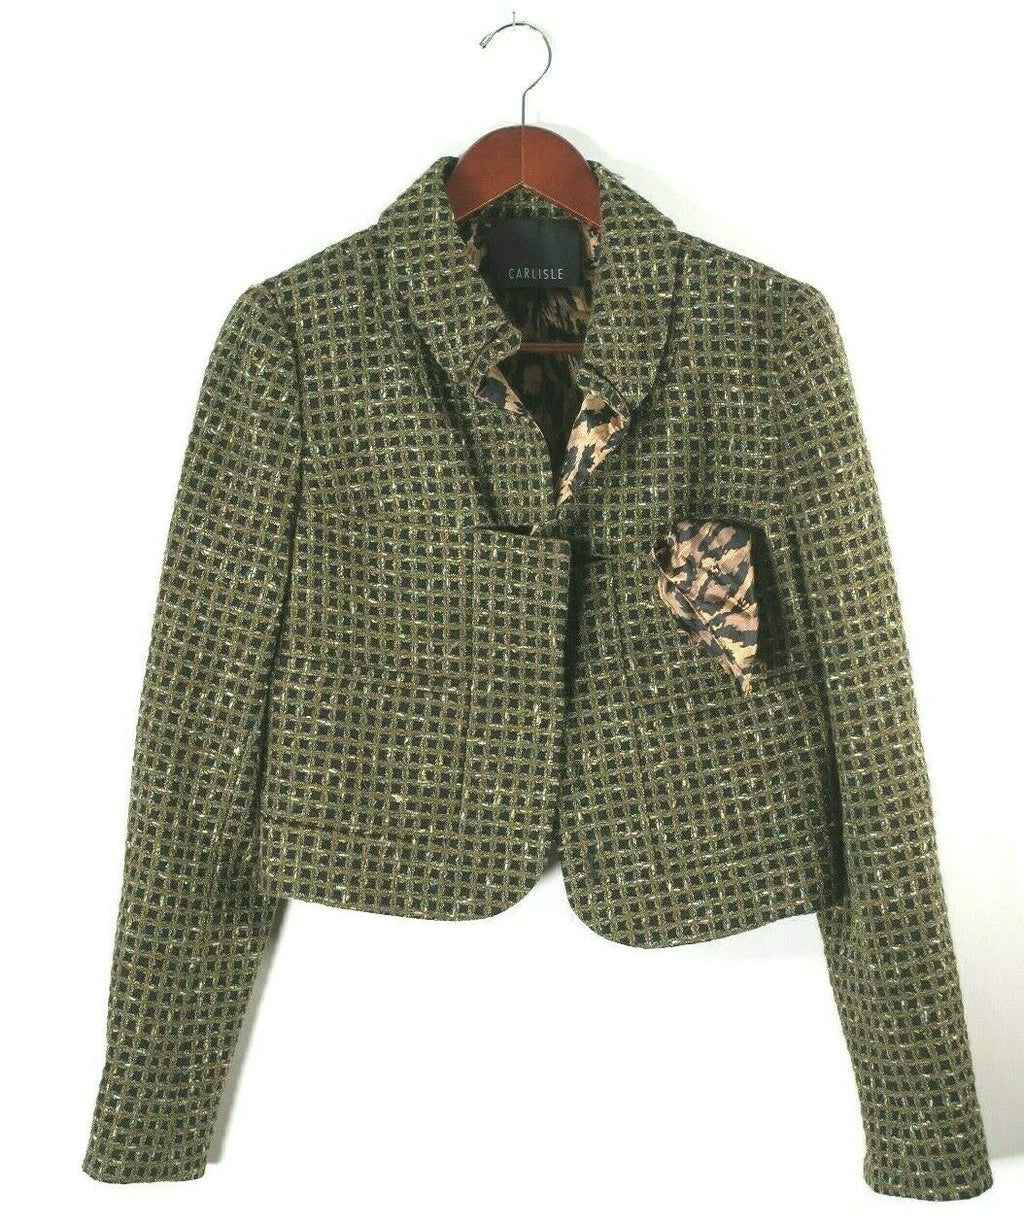 Carlisle Womens Size 8 Medium Olive Green Jacket Tweed Knit Leopard Handkerchief